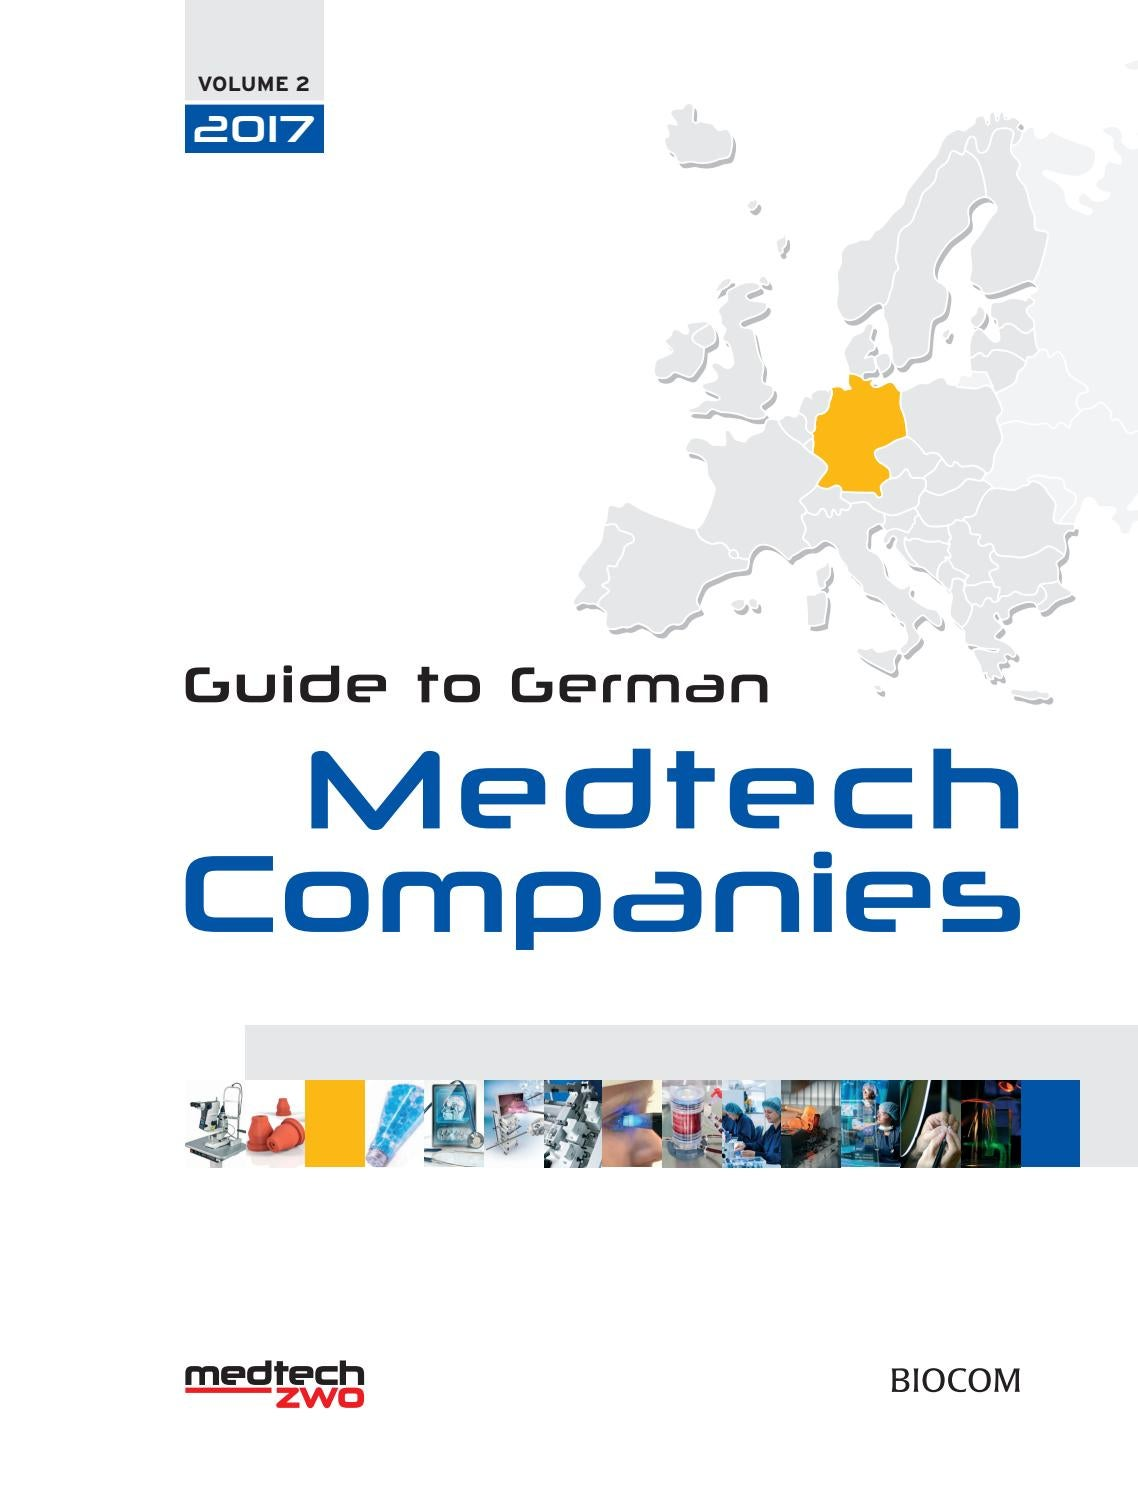 guide to german medtech companies 2017